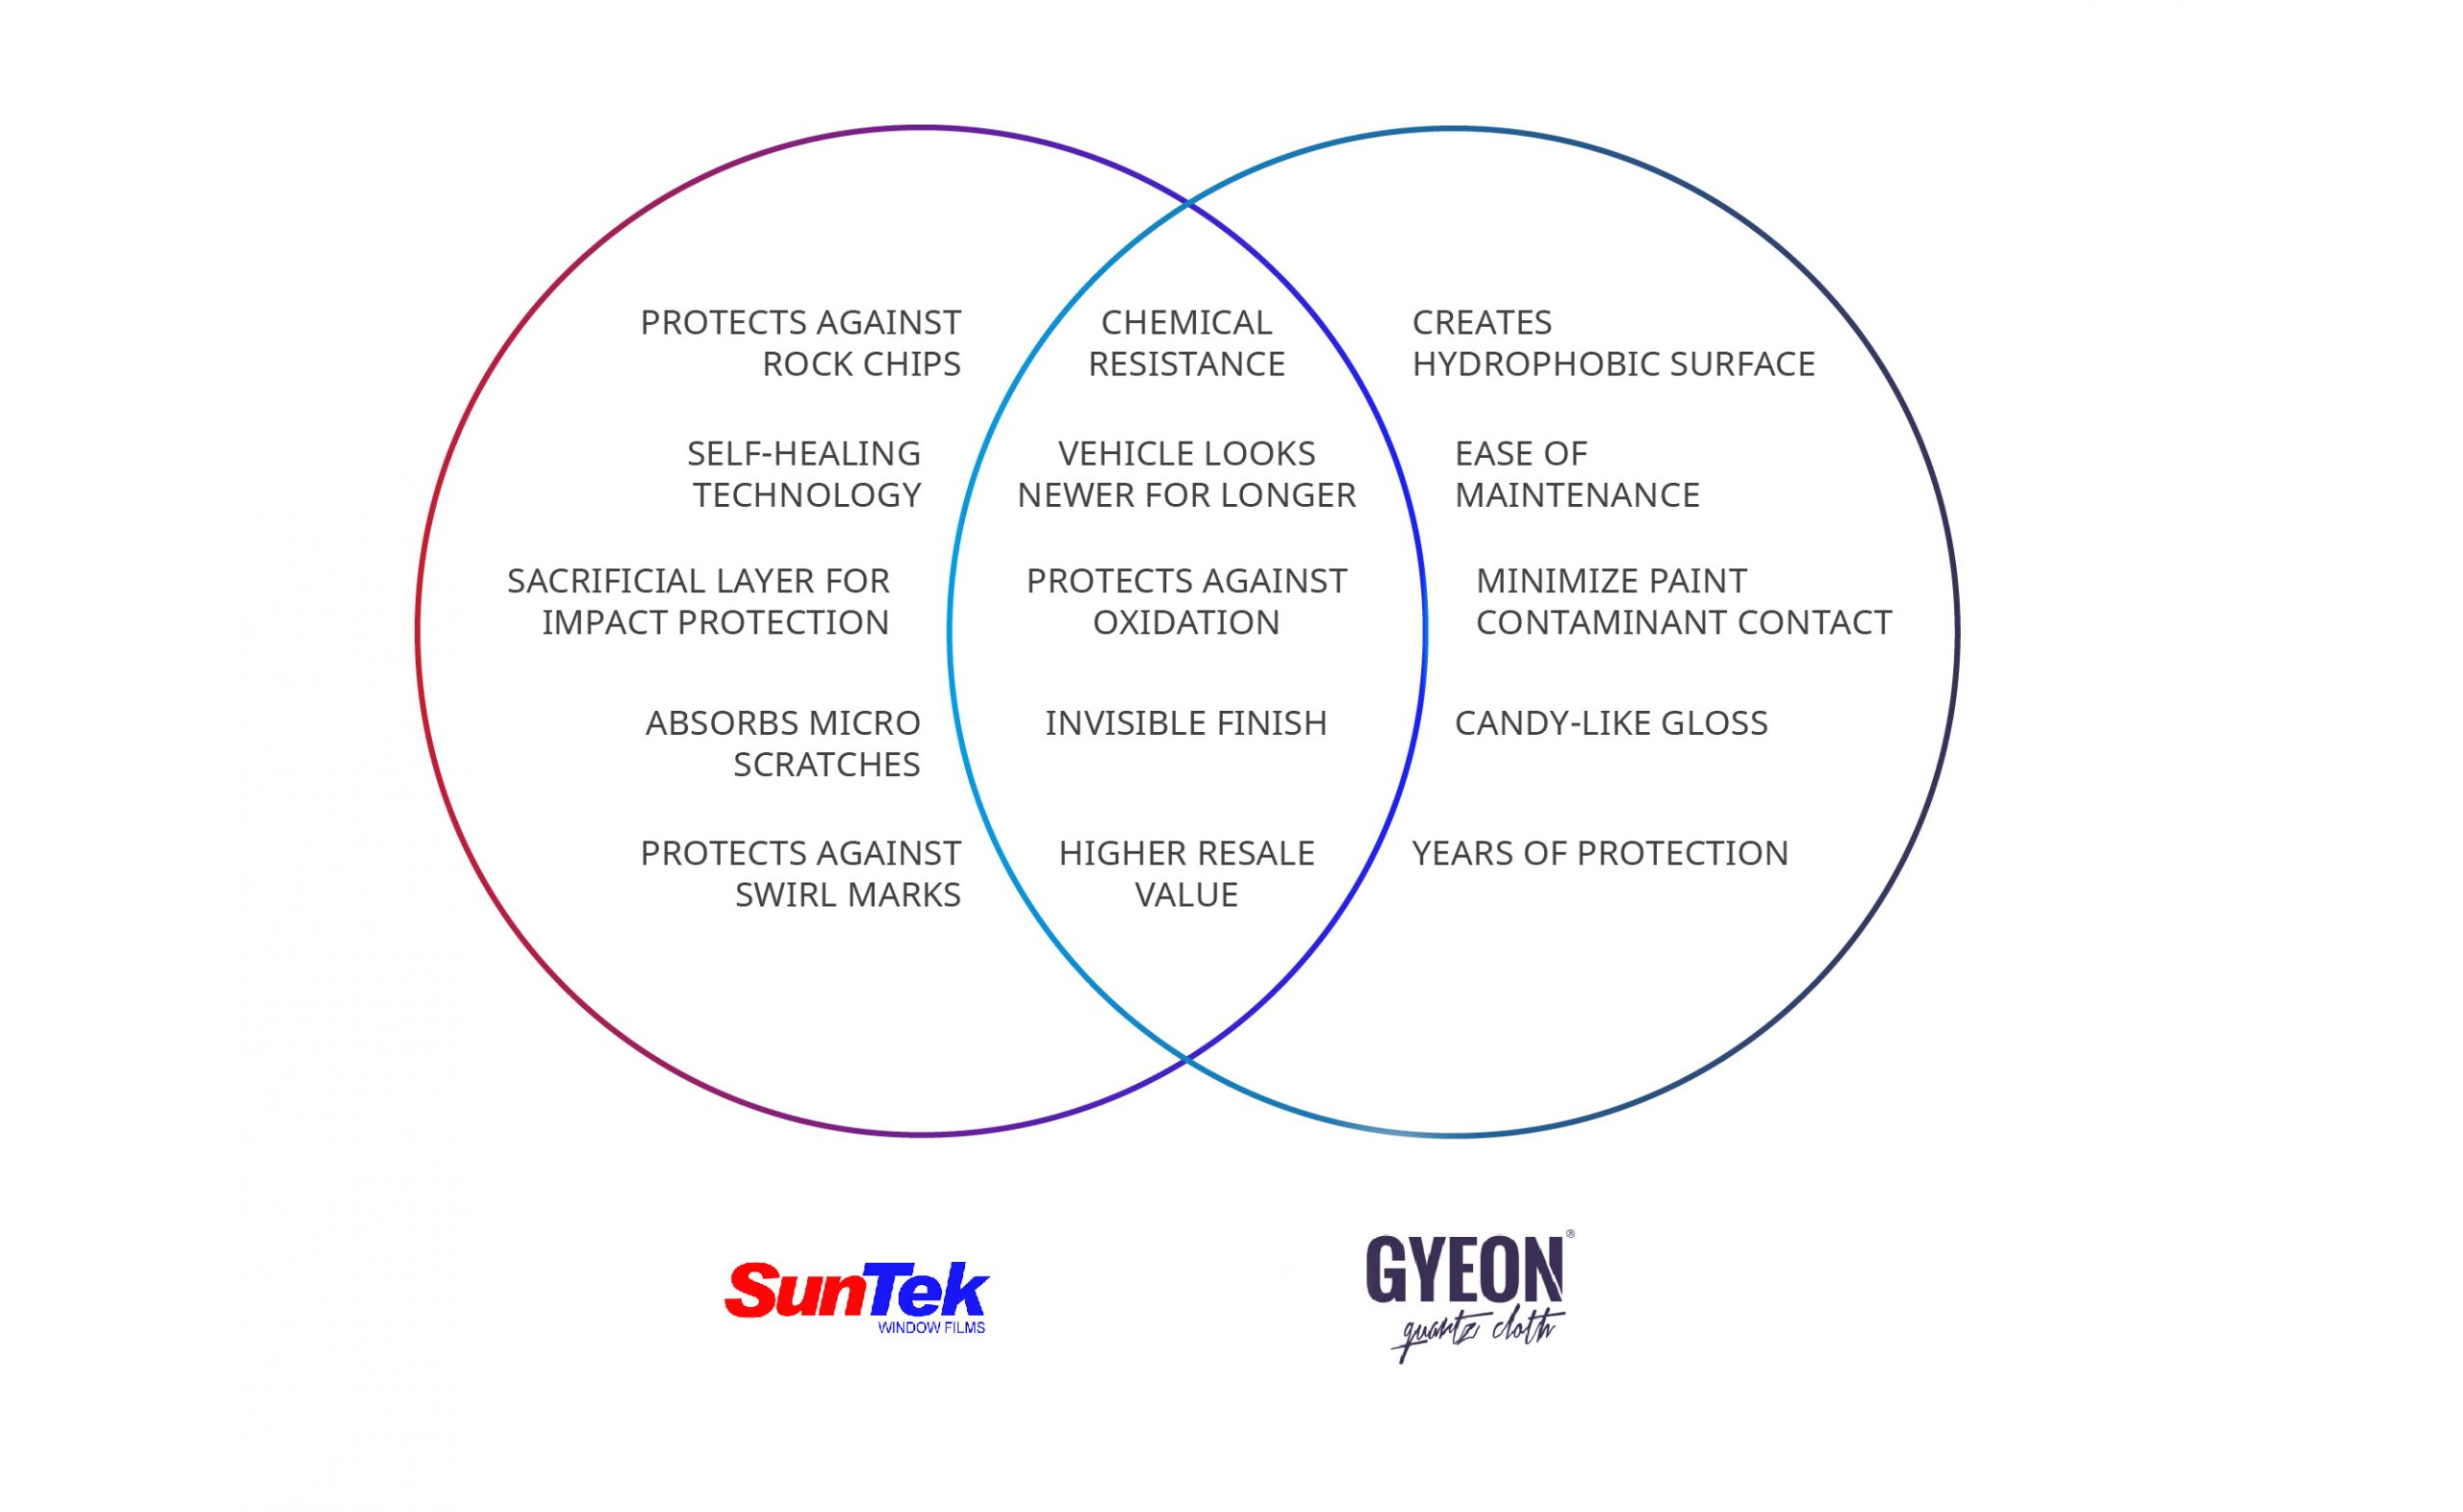 Ven Diagram Of The Benefits Of SunTek Paint Protection Film And Gyeon Ceramic Coatings When Applied Together And Separately.